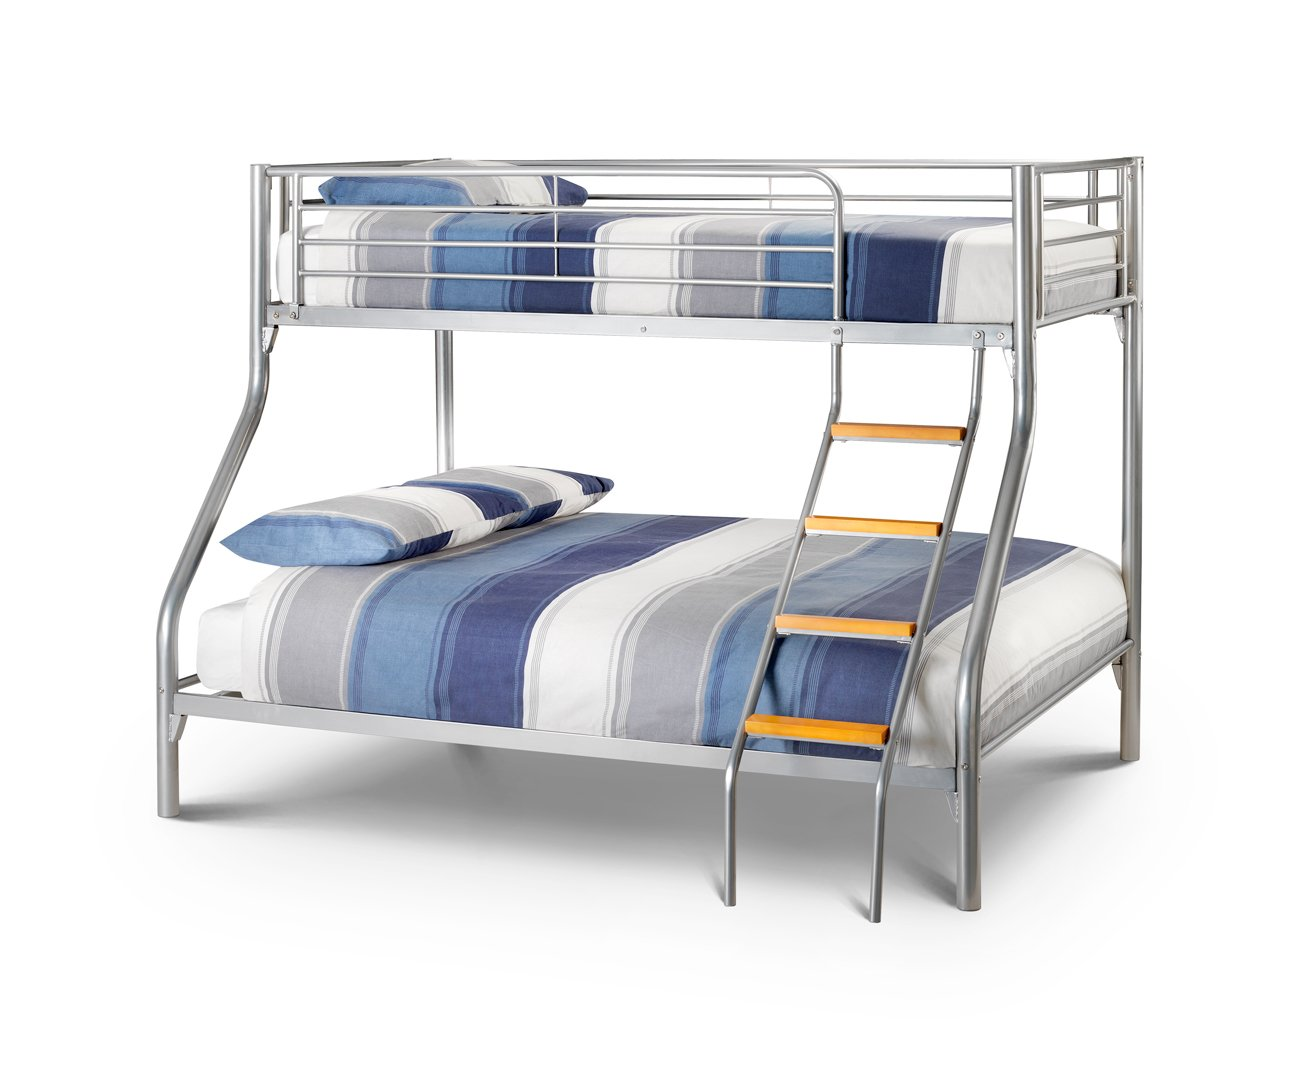 Happy Beds Bunk Bed Atlas Triple Sleeper Solid Metal With 2x Memory Foam Mattresses 3&' Single 90 x 190 cm 4&'6&'&' Double 135 x 190 cm       Customer review and more information